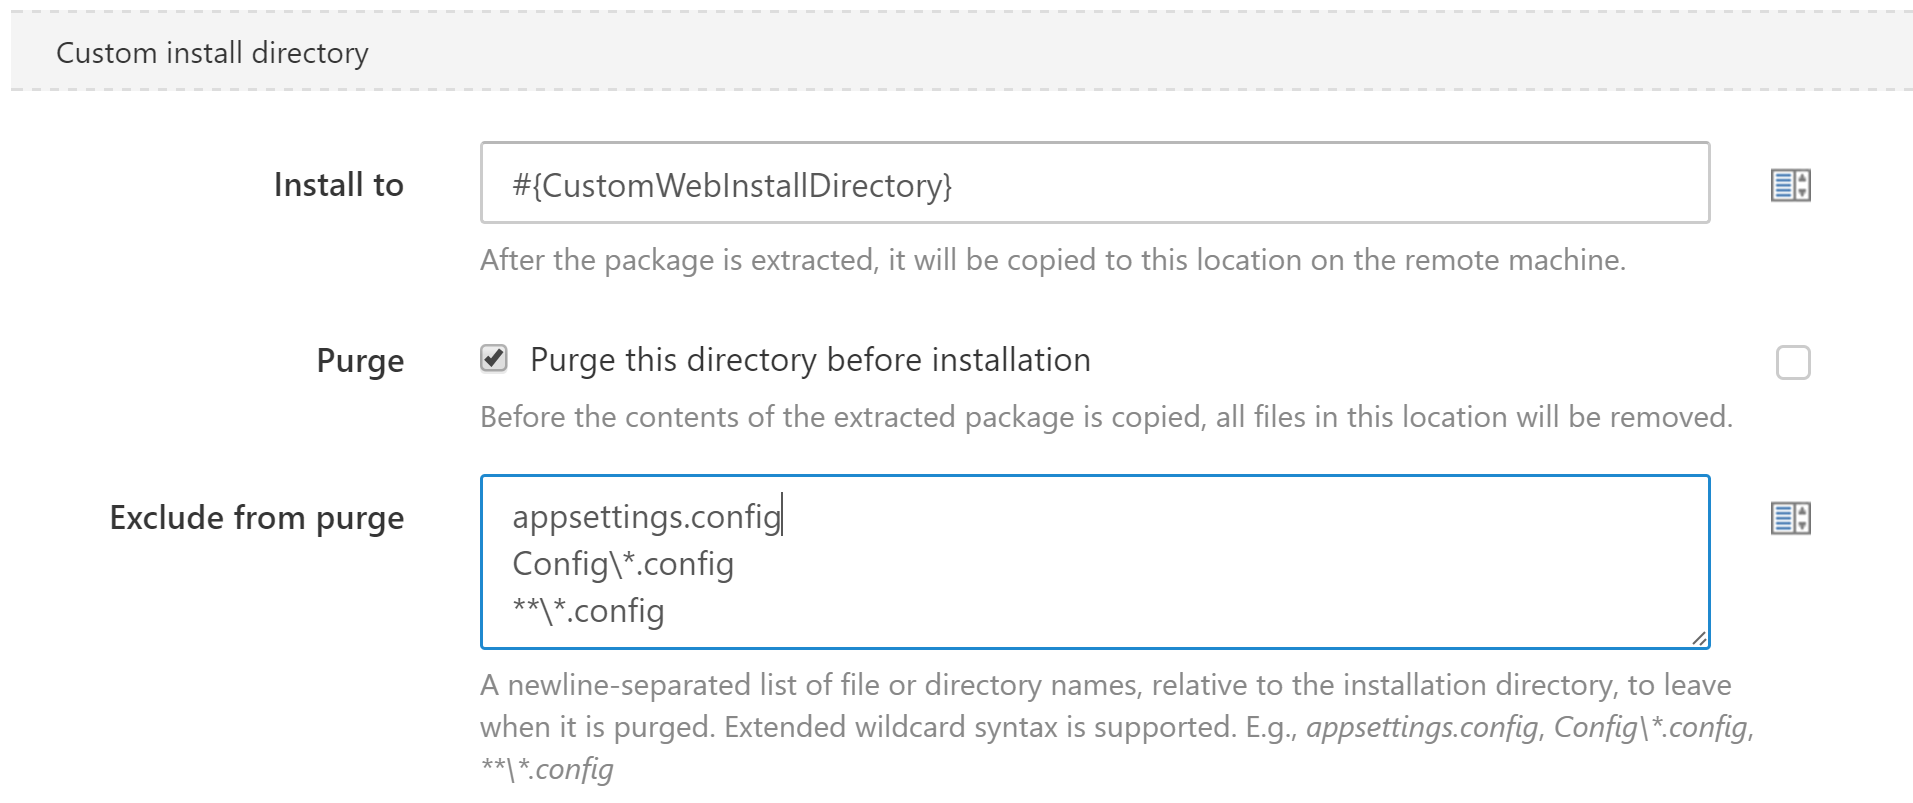 exclude files and folders during purge